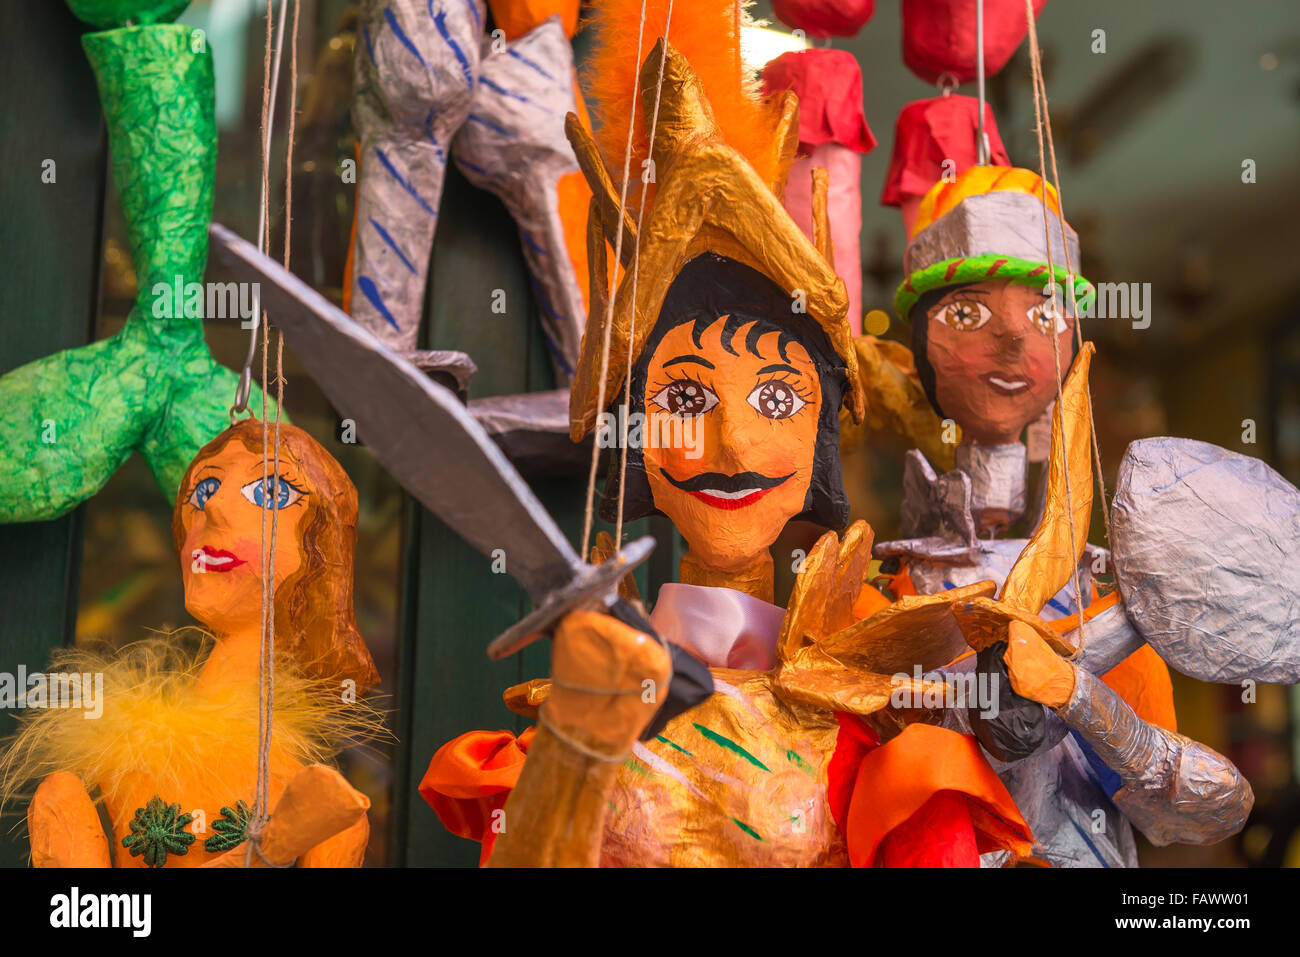 Sicily puppet, colourful traditional papier mache puppets for sale on the Corso Umberto l in Taormina, Sicily. - Stock Image